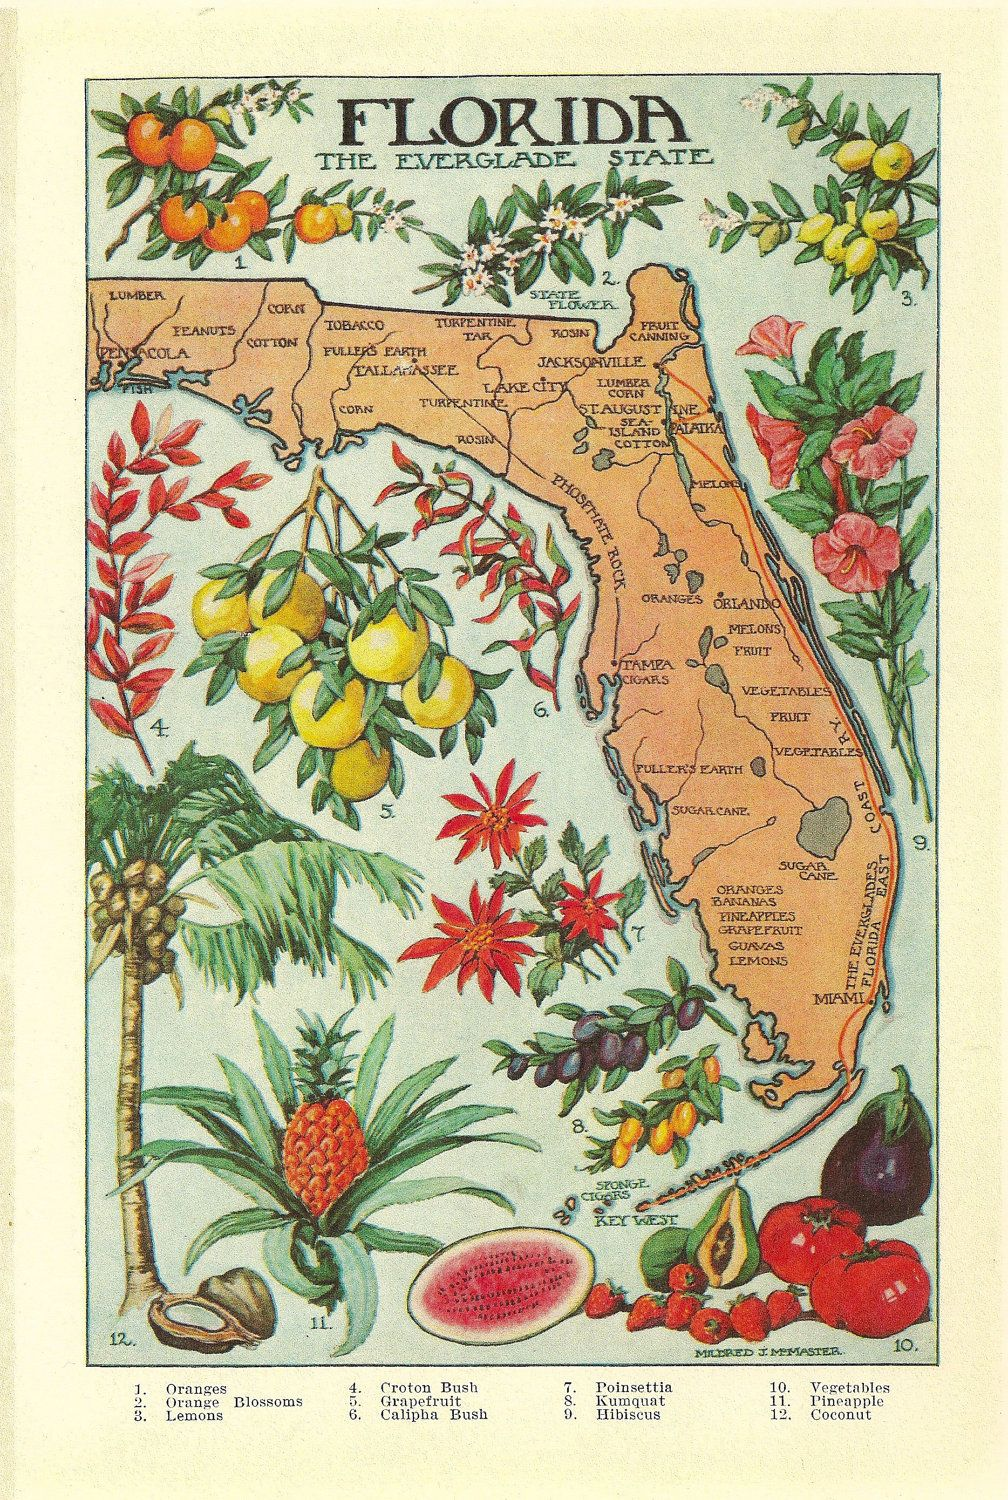 Vintage Florida Map.1912 Vintage Florida Illustrated Map Colorful And Lovely What